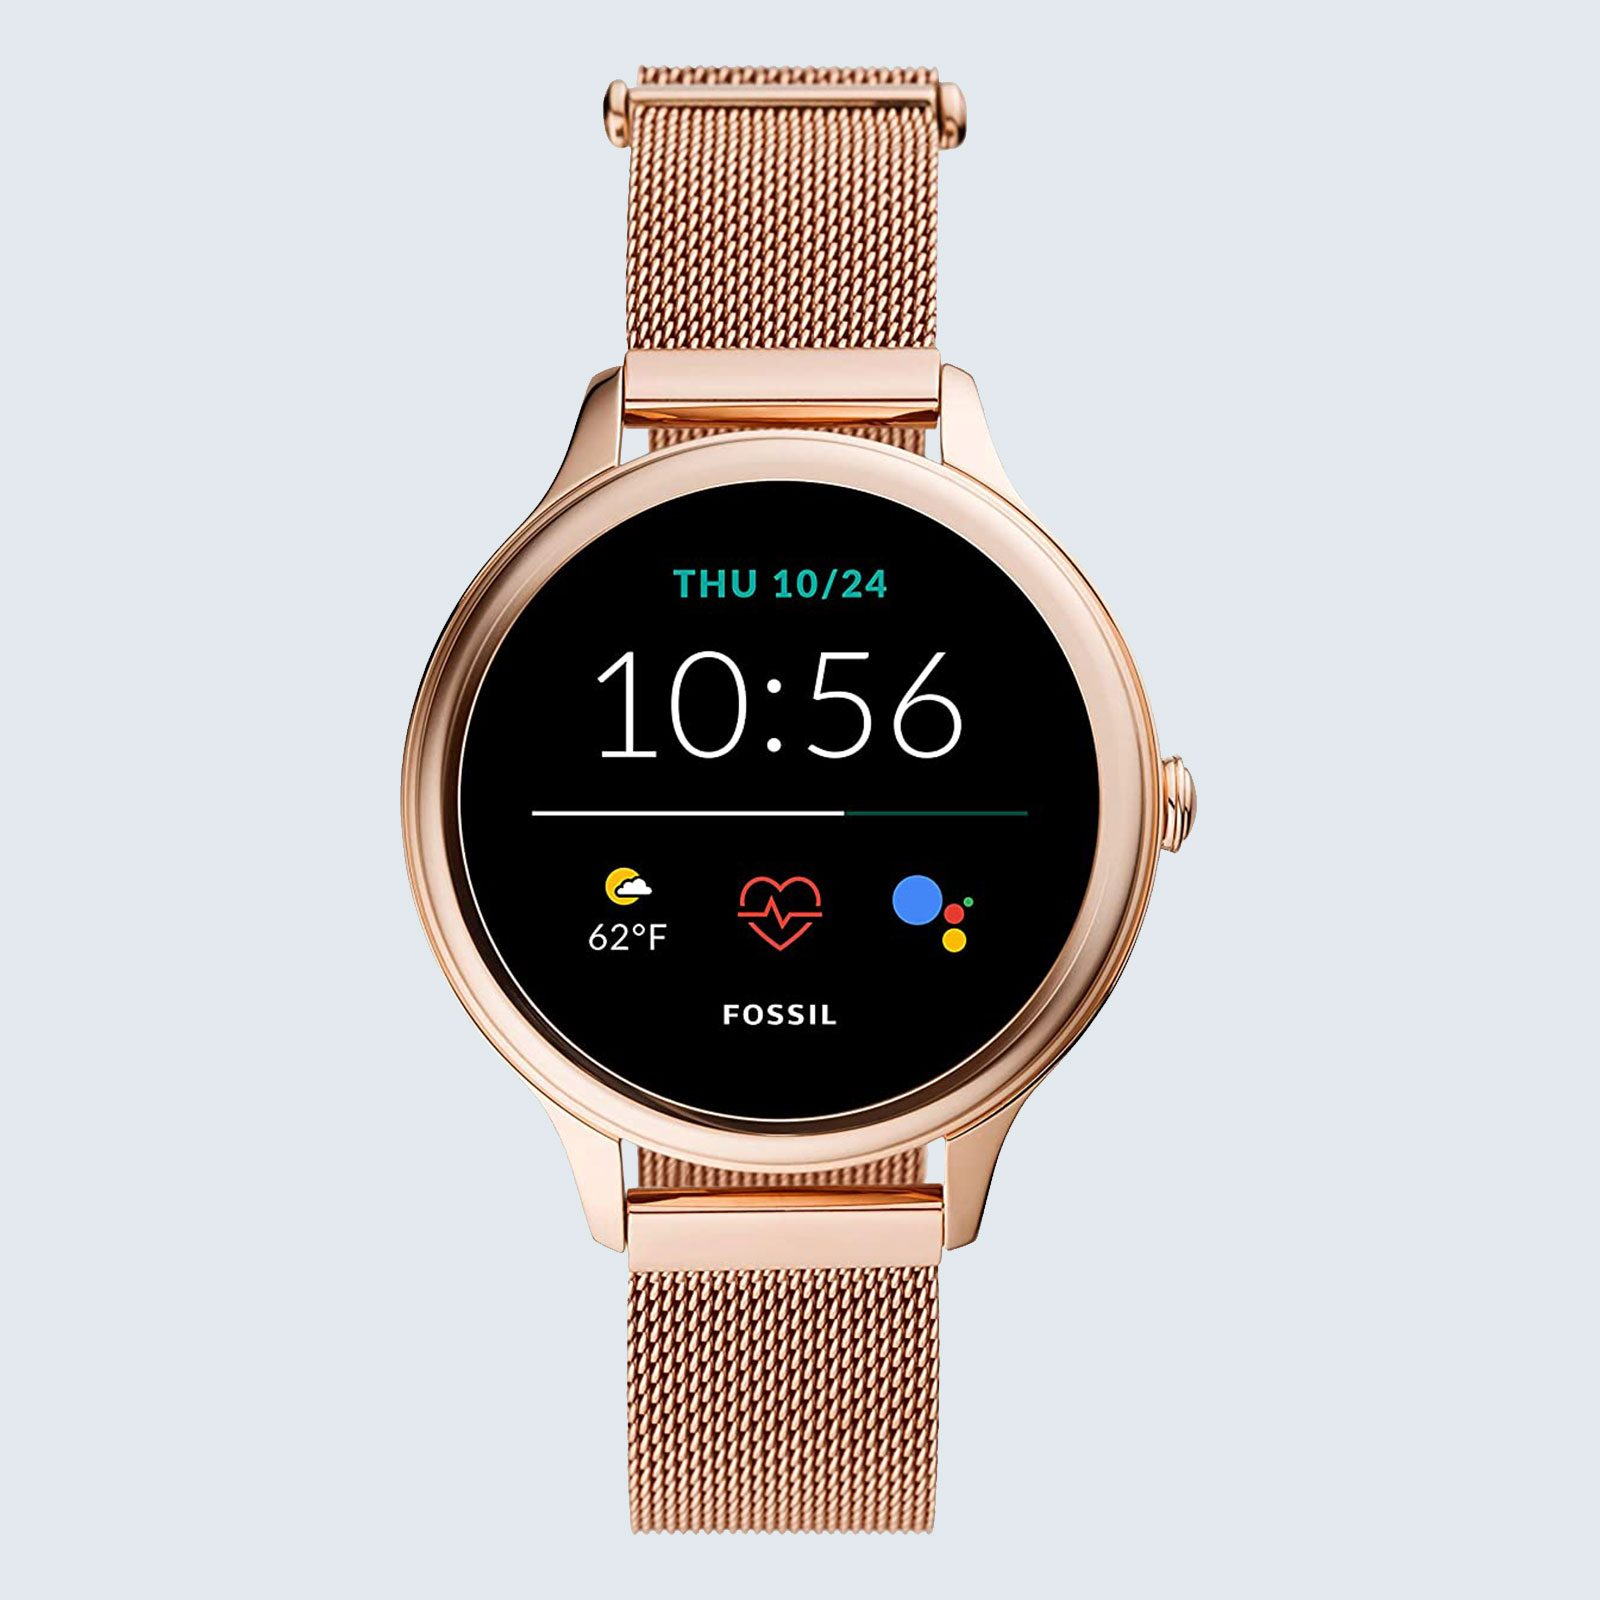 For the step-counter: Fossil Stainless Steel Touchscreen Smartwatch